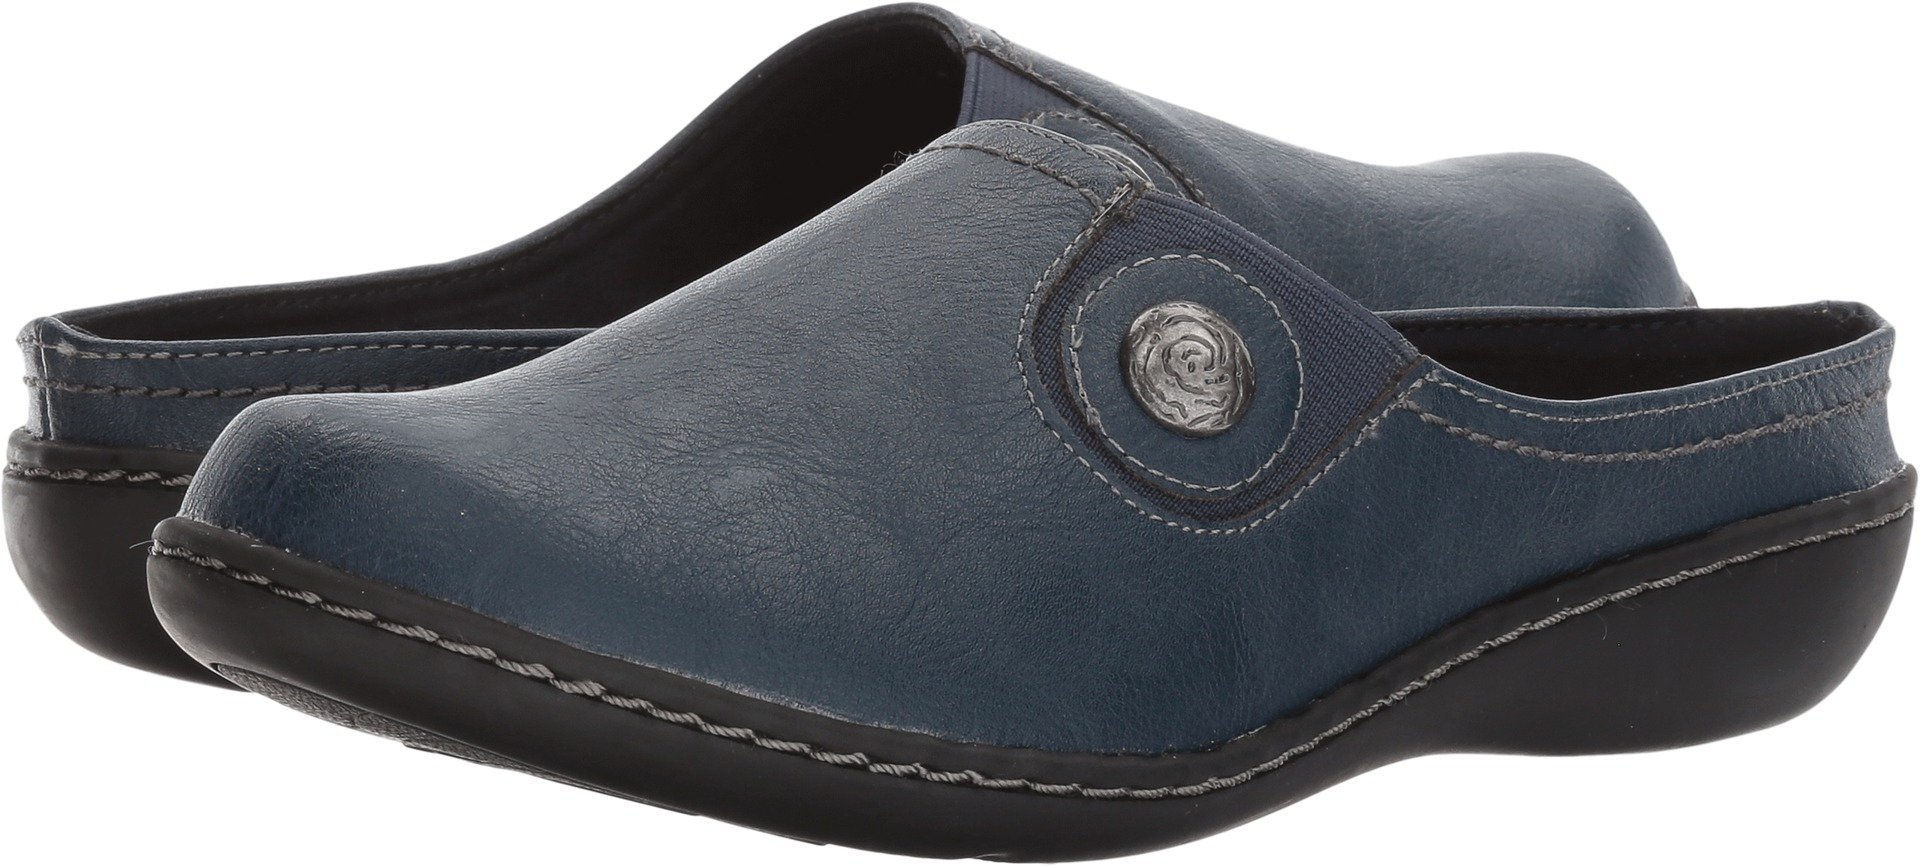 Soft Style by Hush Puppies Women's Jamila Mule, Navy, 7.5 W US